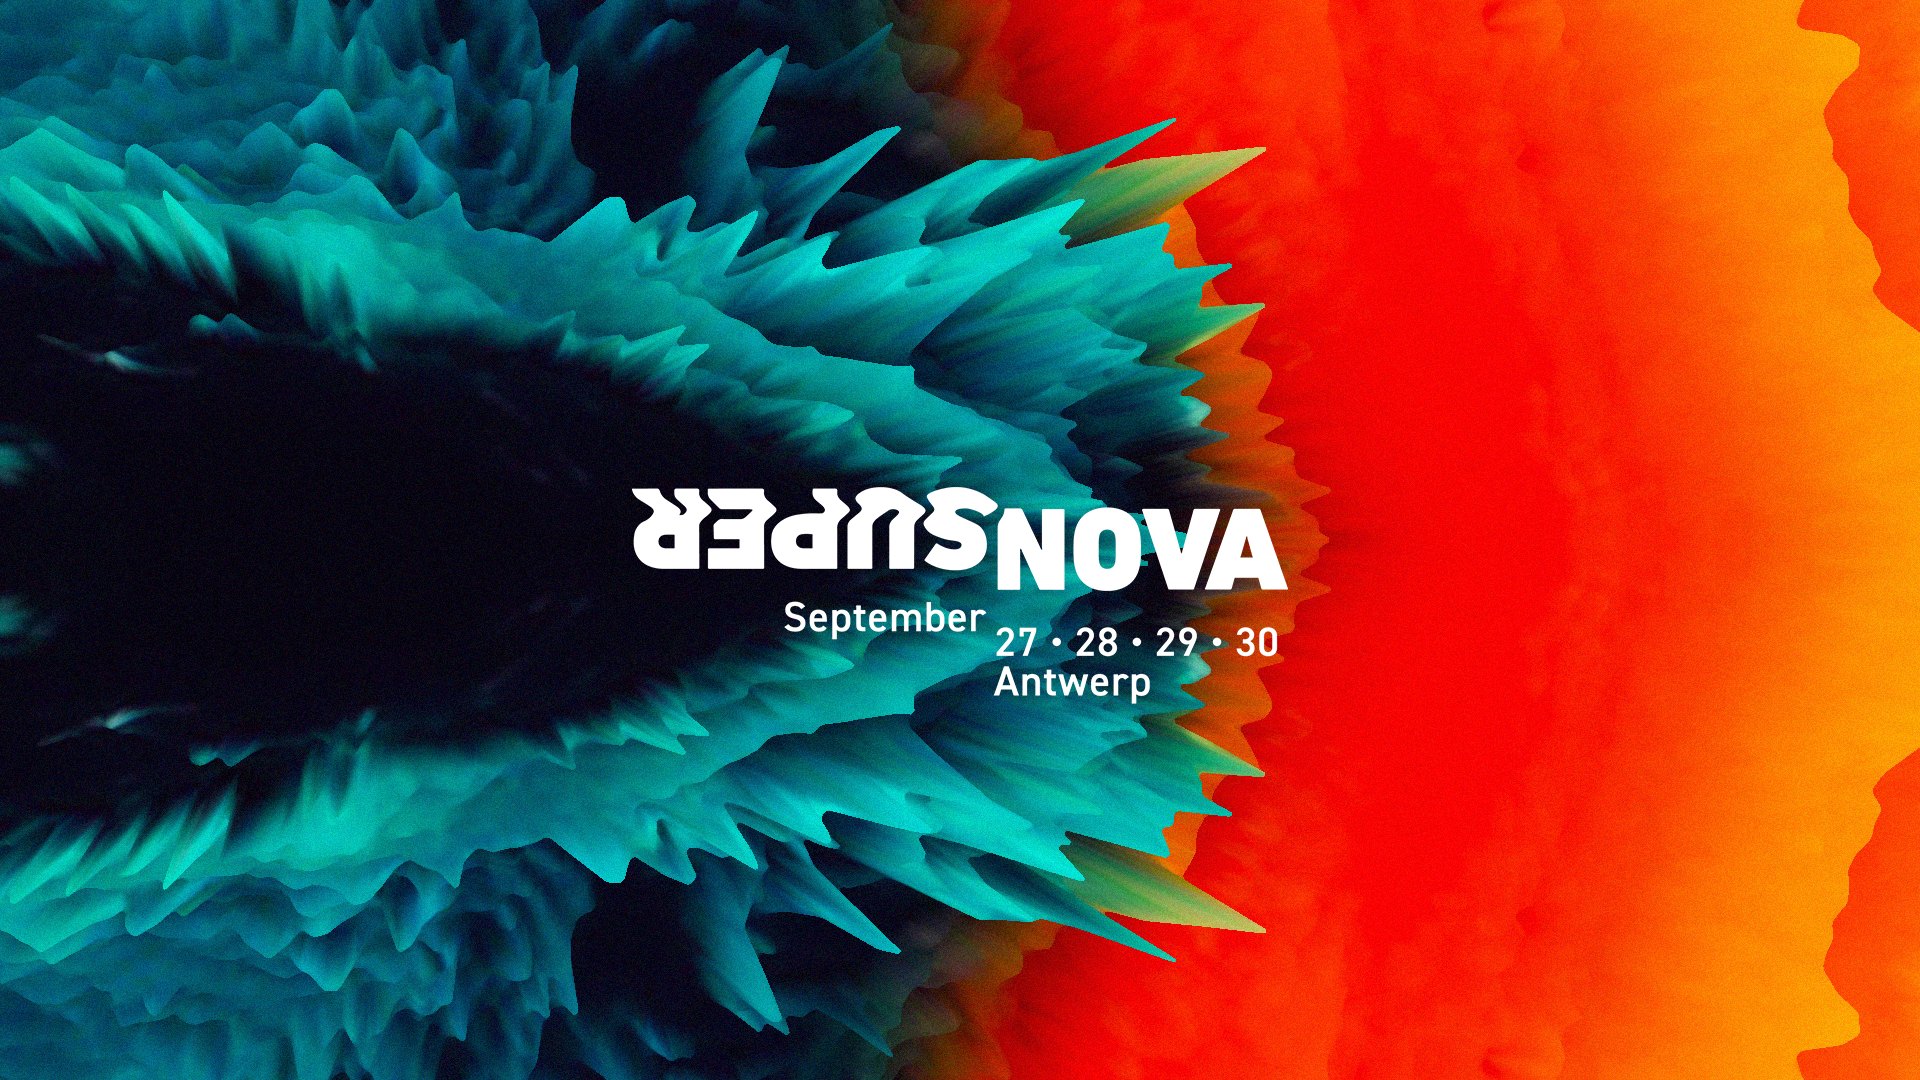 SuperNova, one of Europe's biggest tech summits・September 27-30・Antwerpen